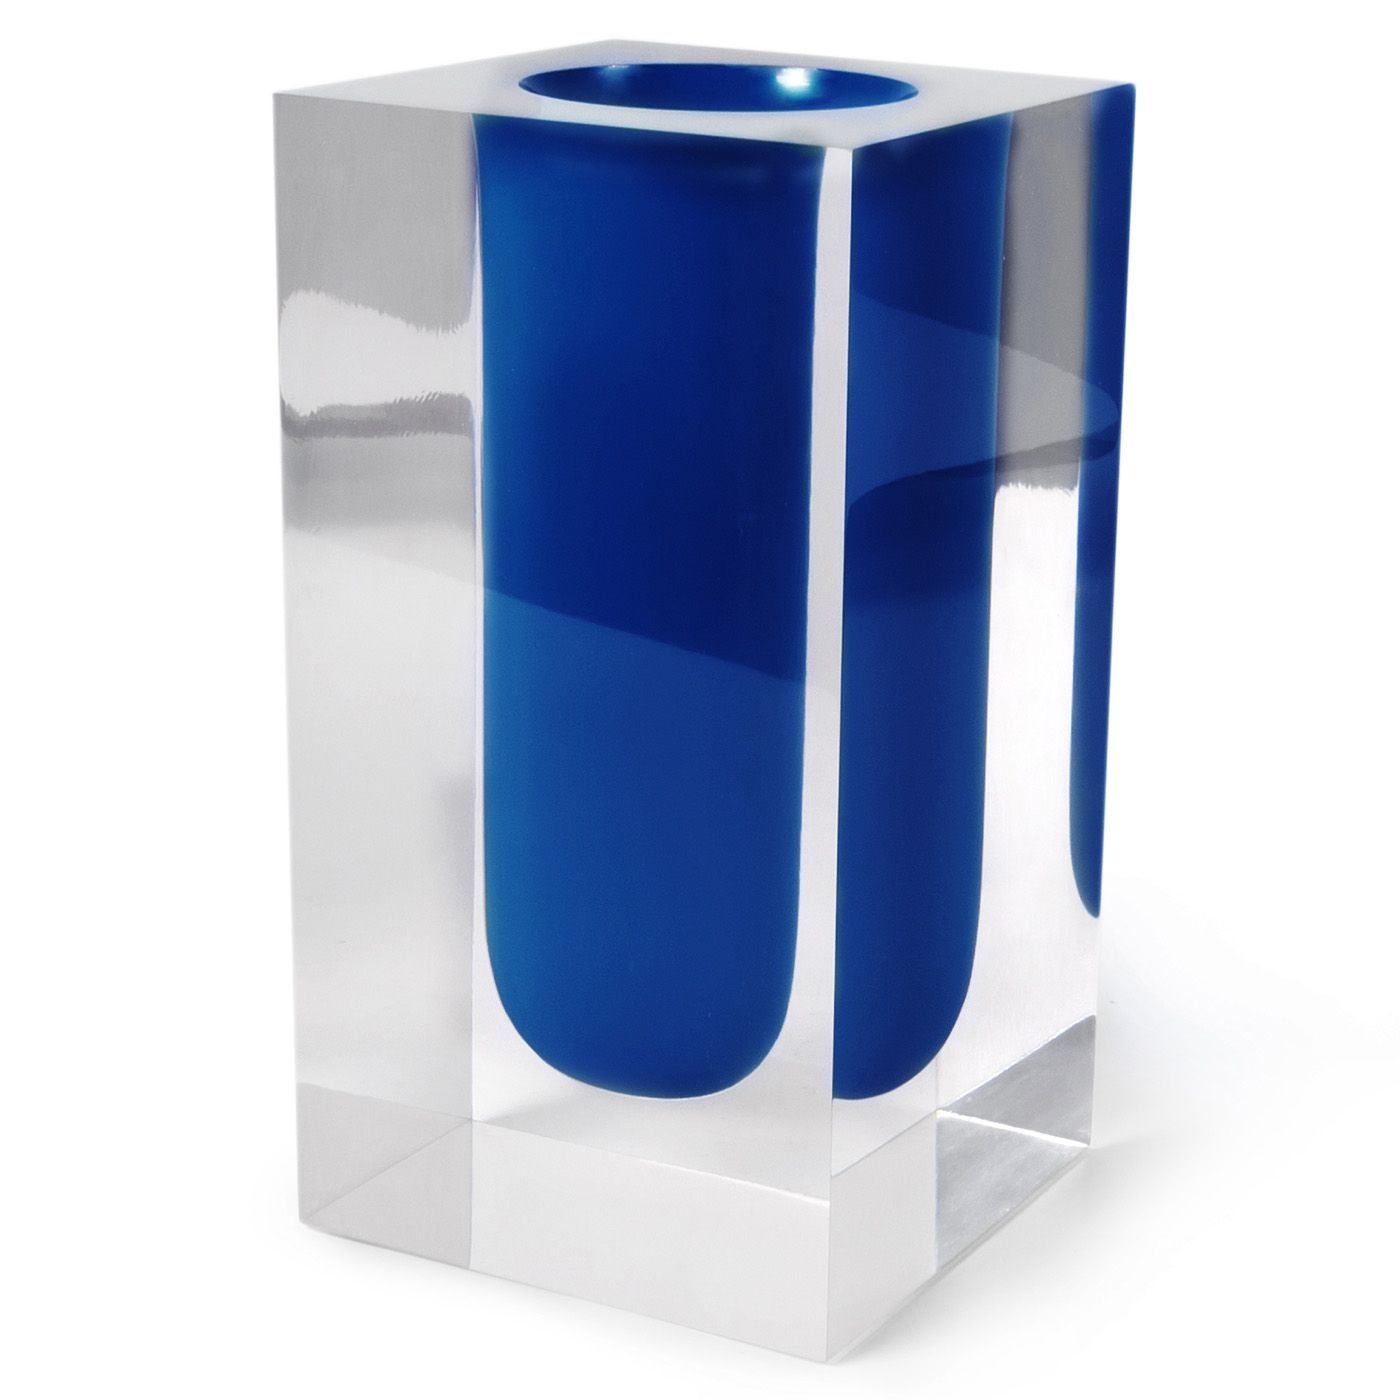 An Organic Form In Color Suspended Acrylic Cube A Surreal Take On Glam Décor Finished By Hand And Perfect For Bold